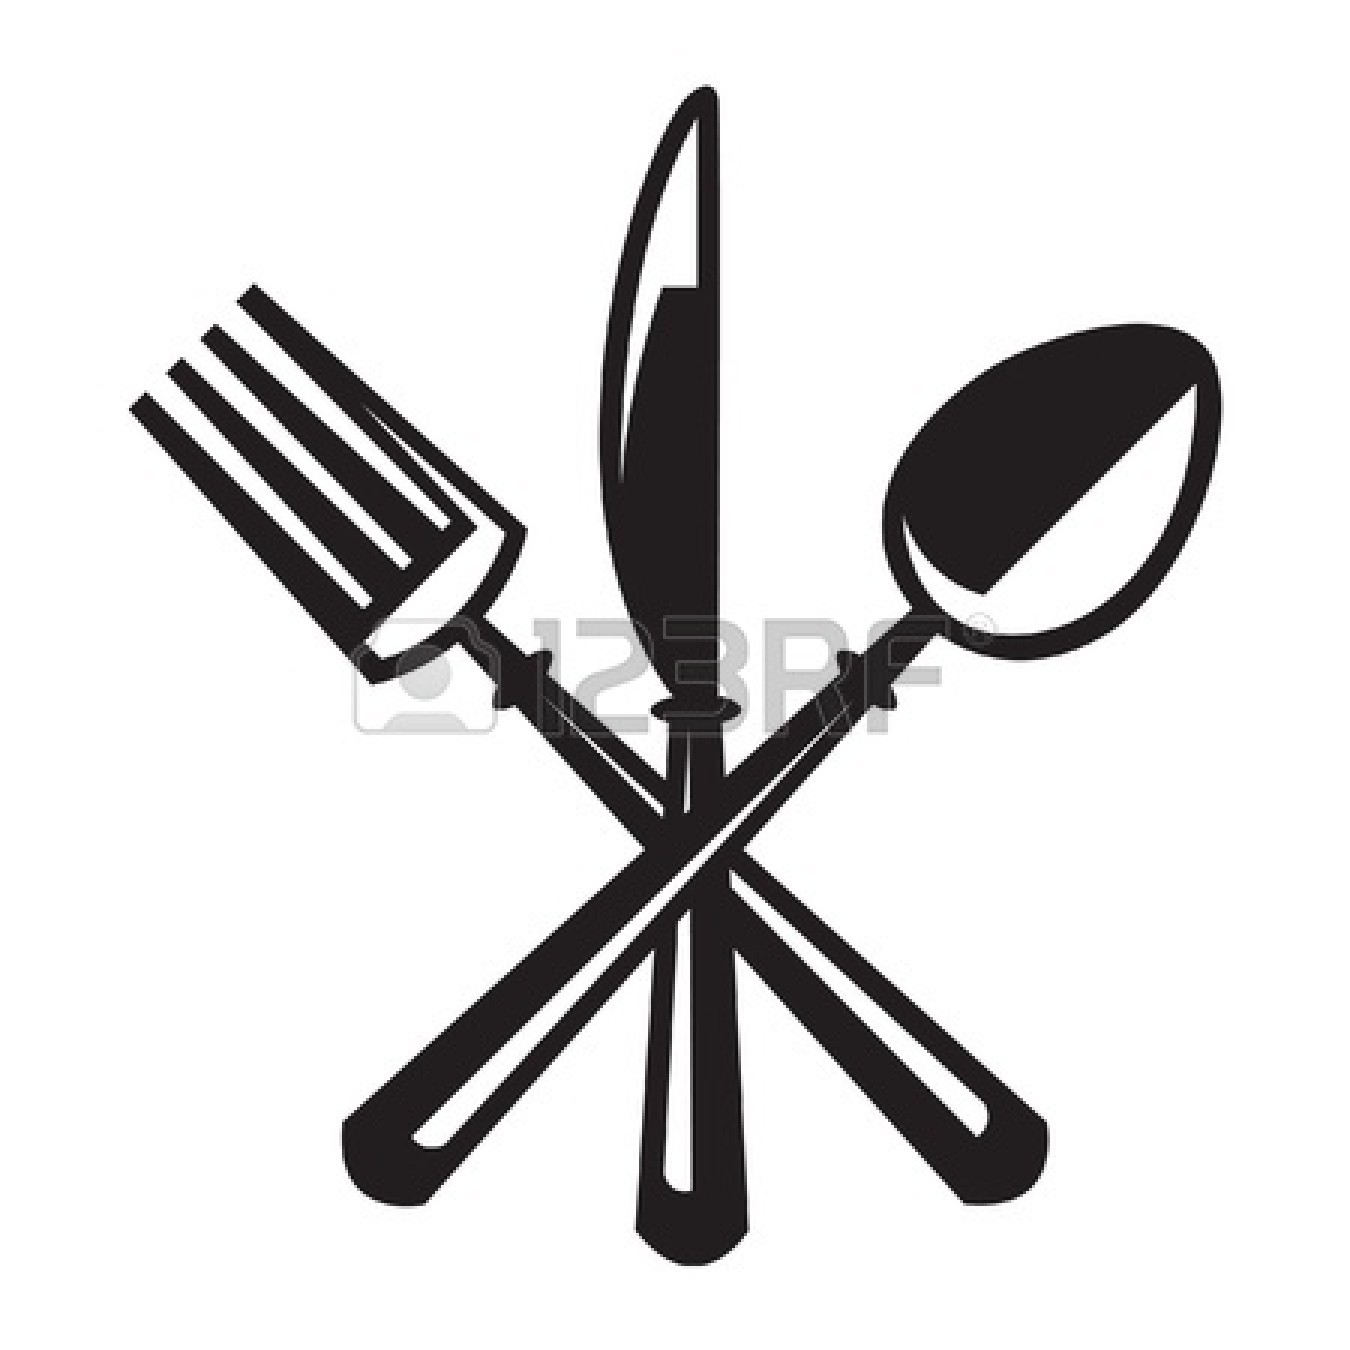 1350x1350 Spoon Clipart Spoon Fork